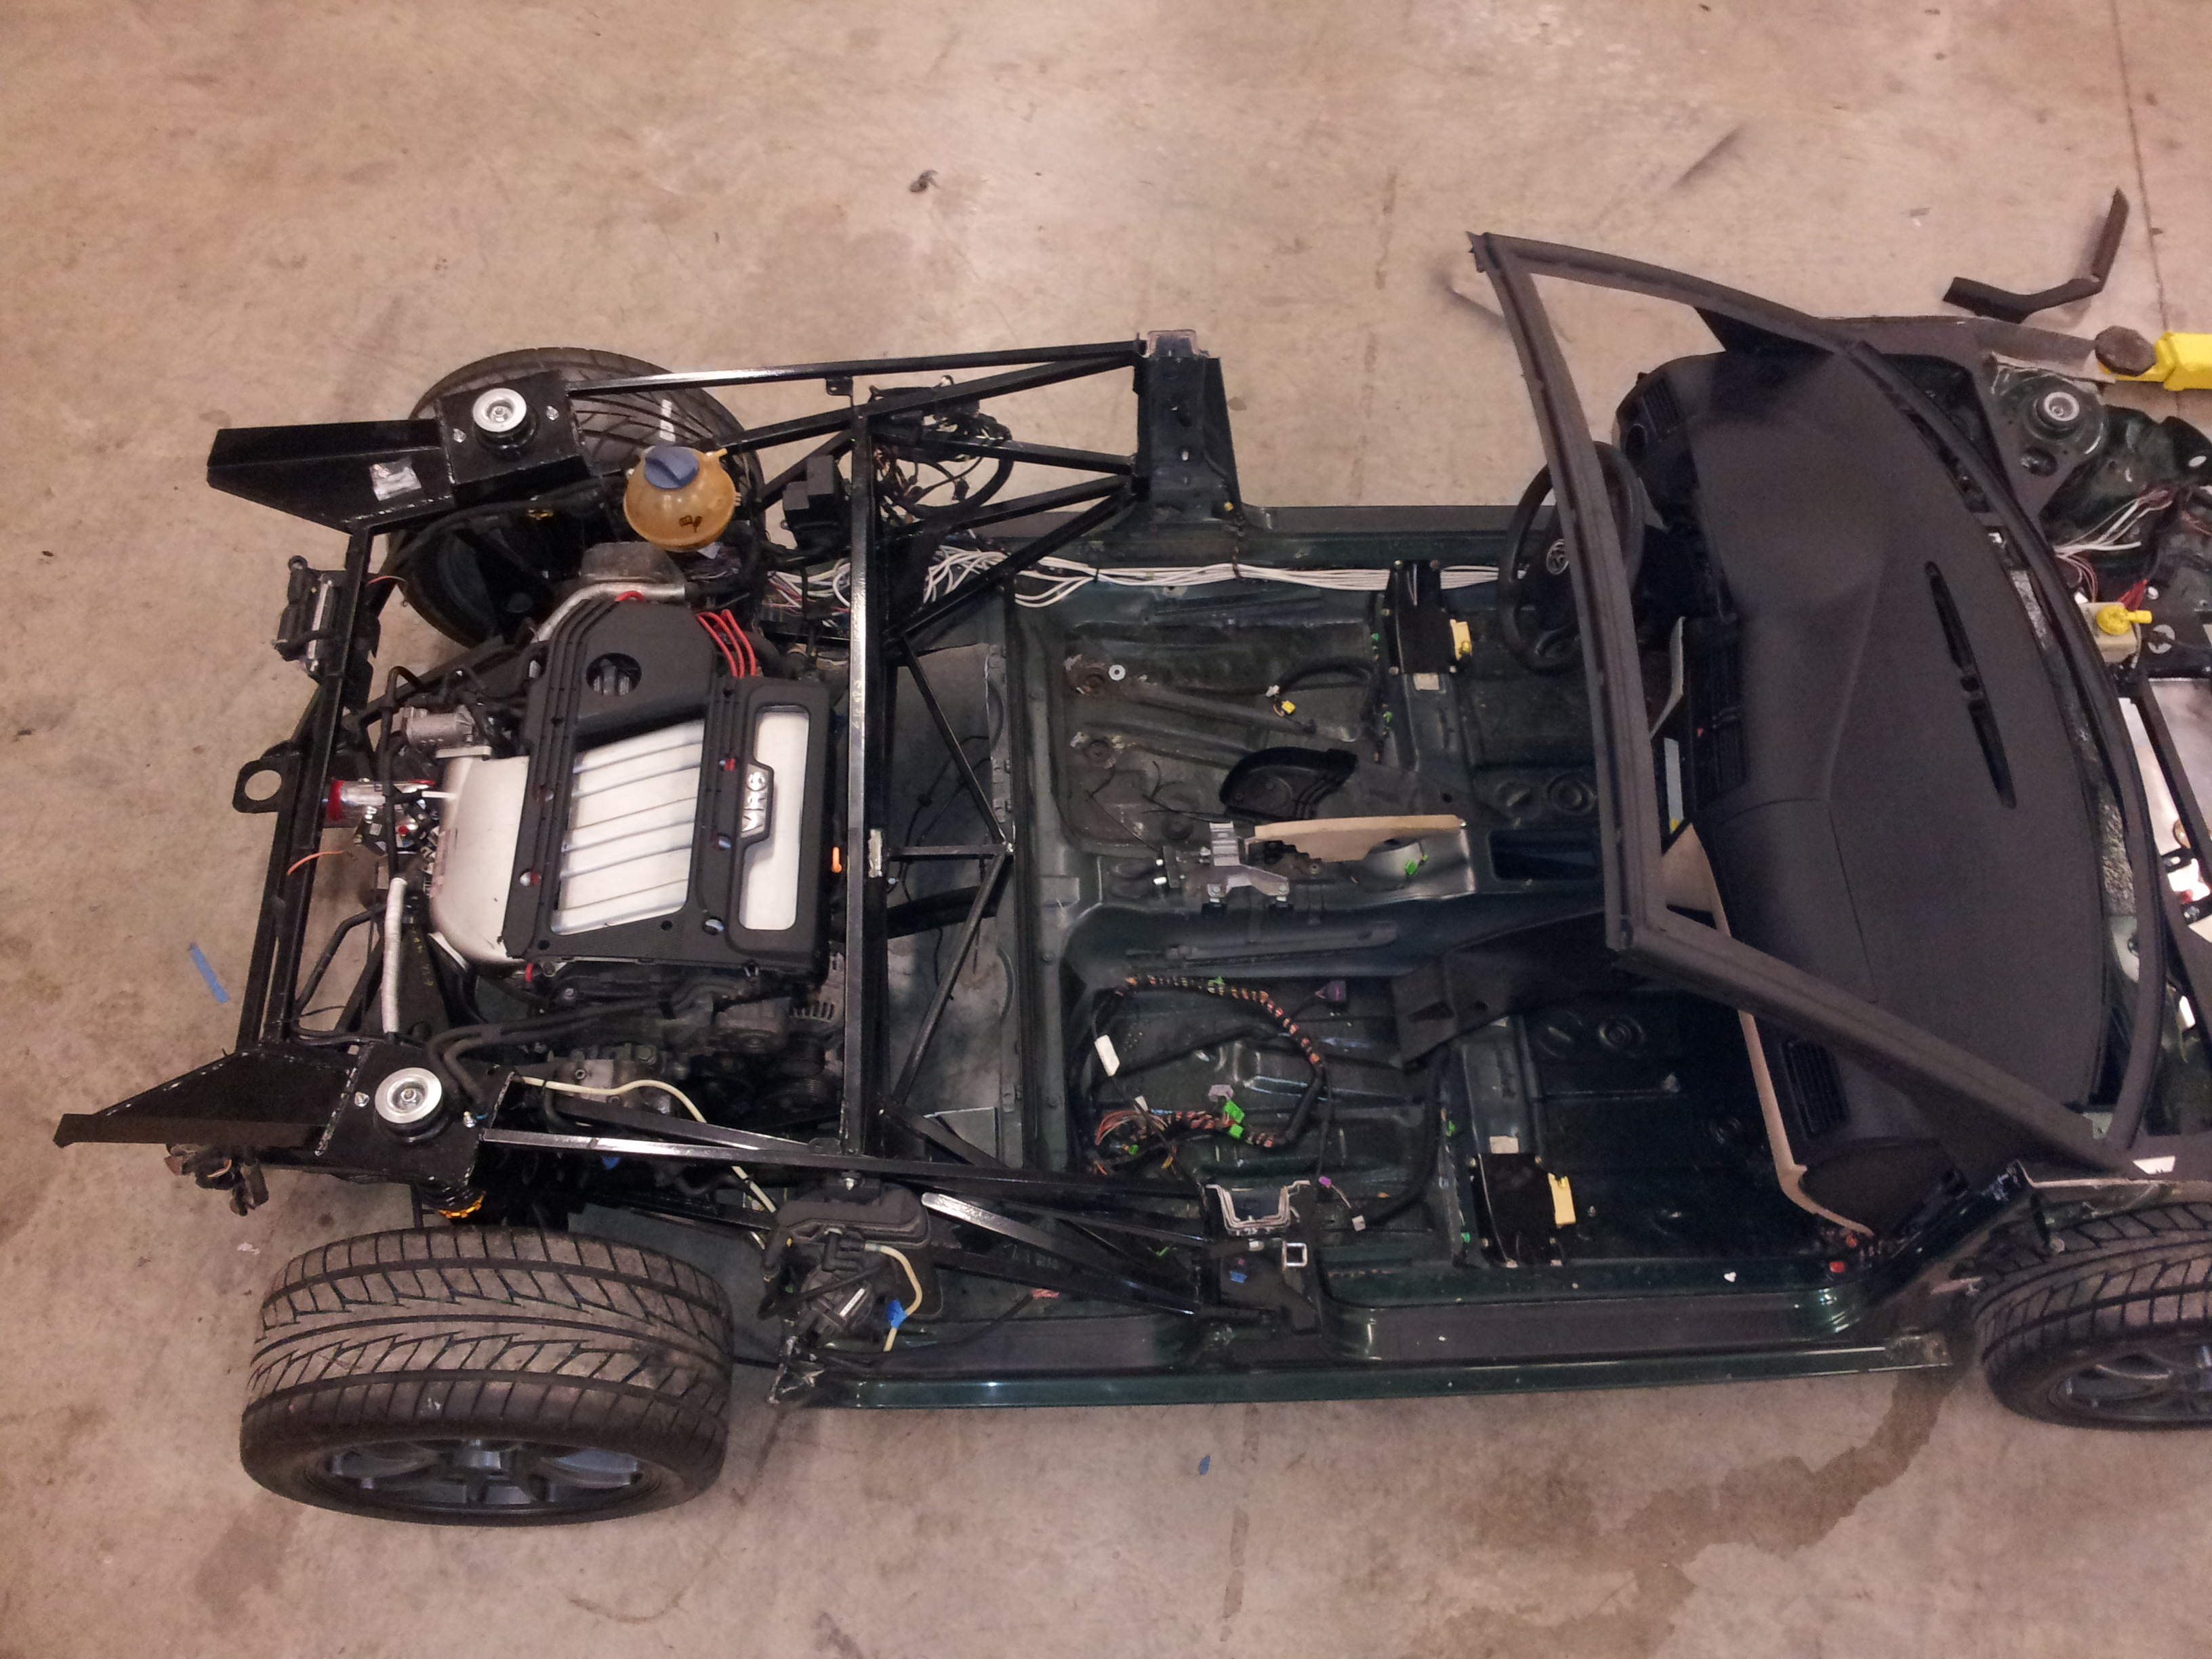 The G3F rolling chassis